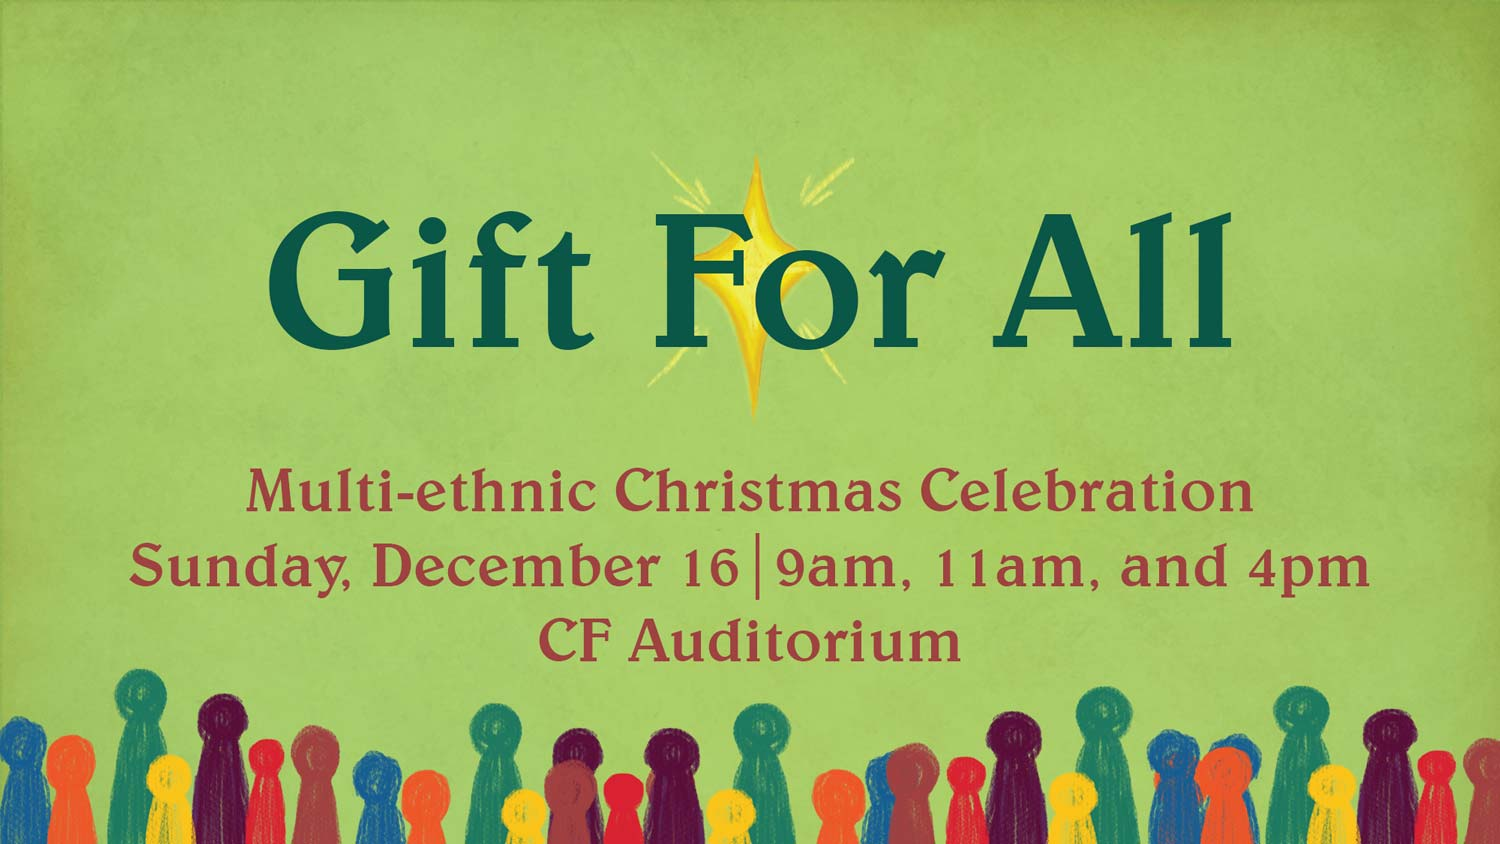 Gift For All Christmas Celebration at Christian Fellowship Church in Columbia Mo on December 16